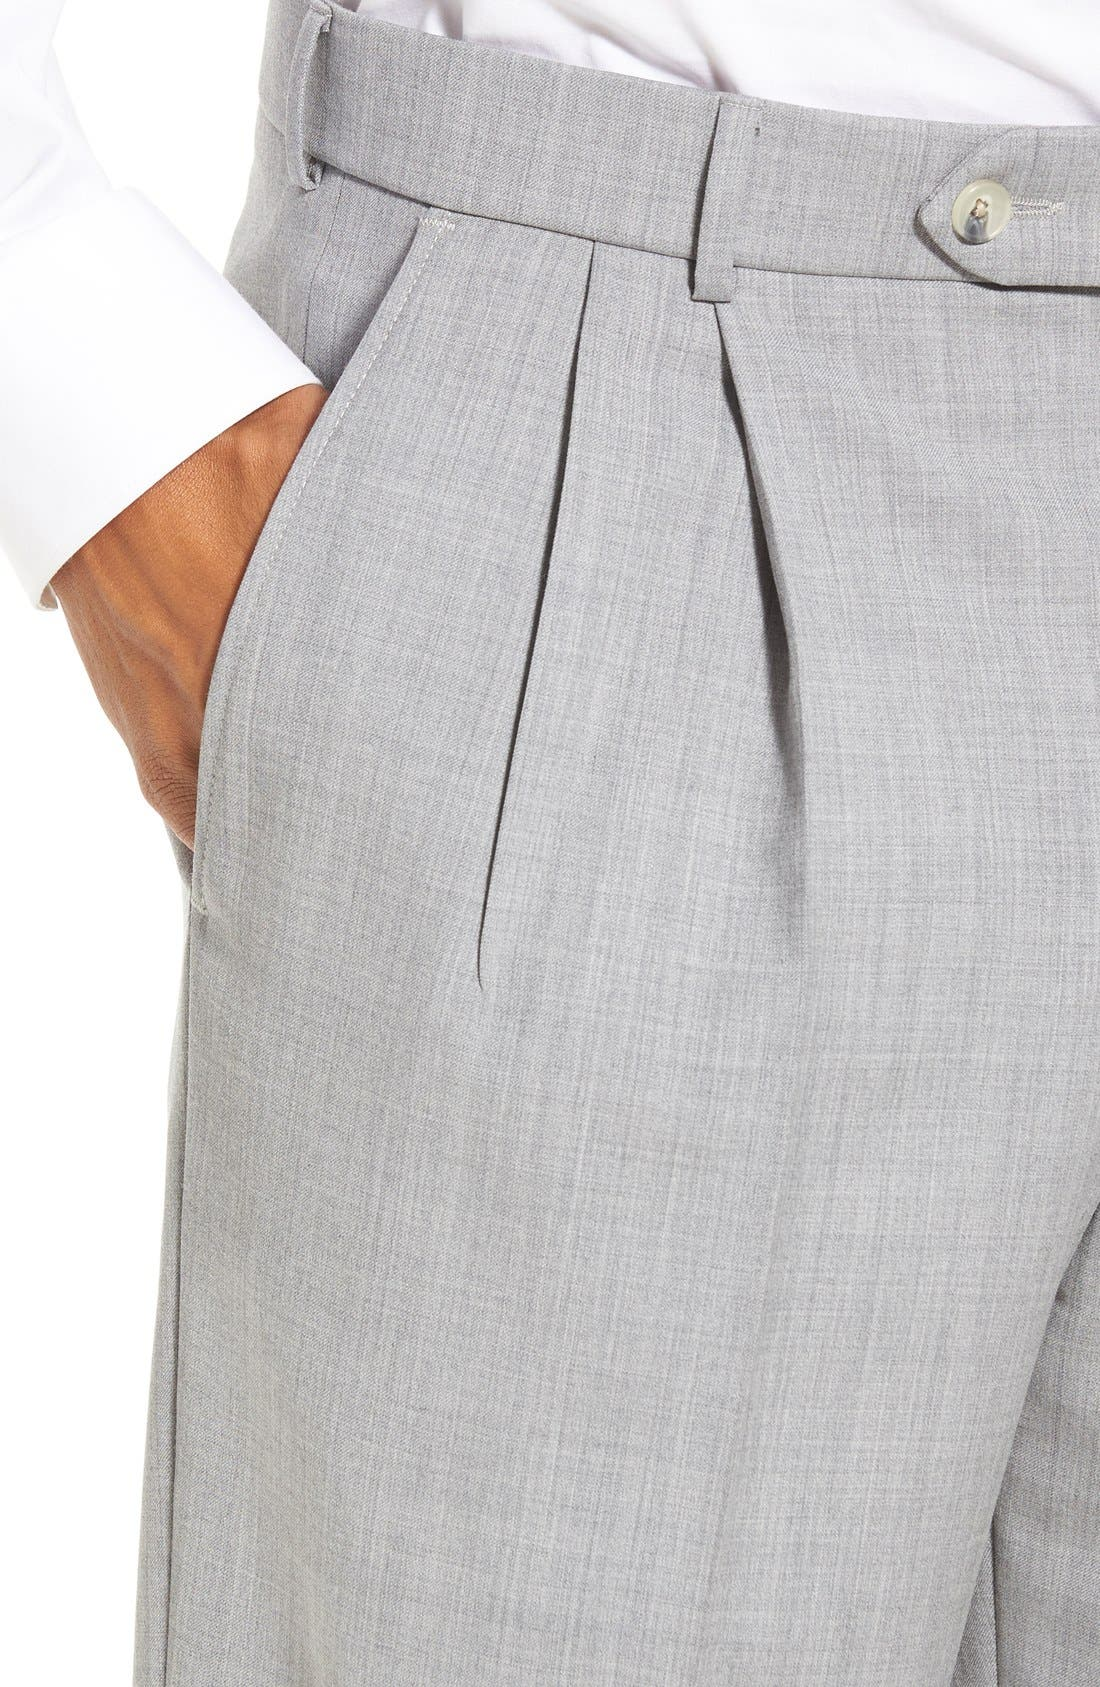 Pleated Solid Wool Trousers,                             Alternate thumbnail 44, color,